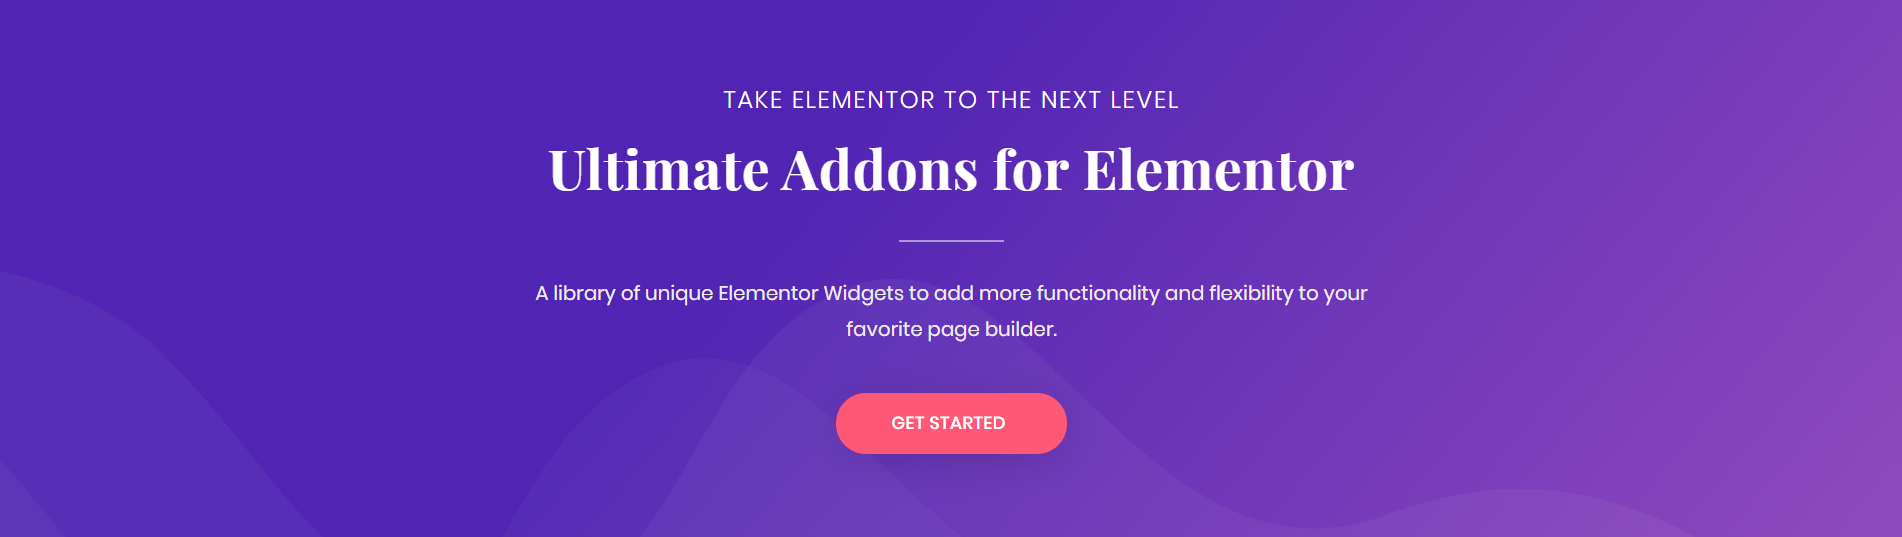 elementor woocommerce add-ons 8